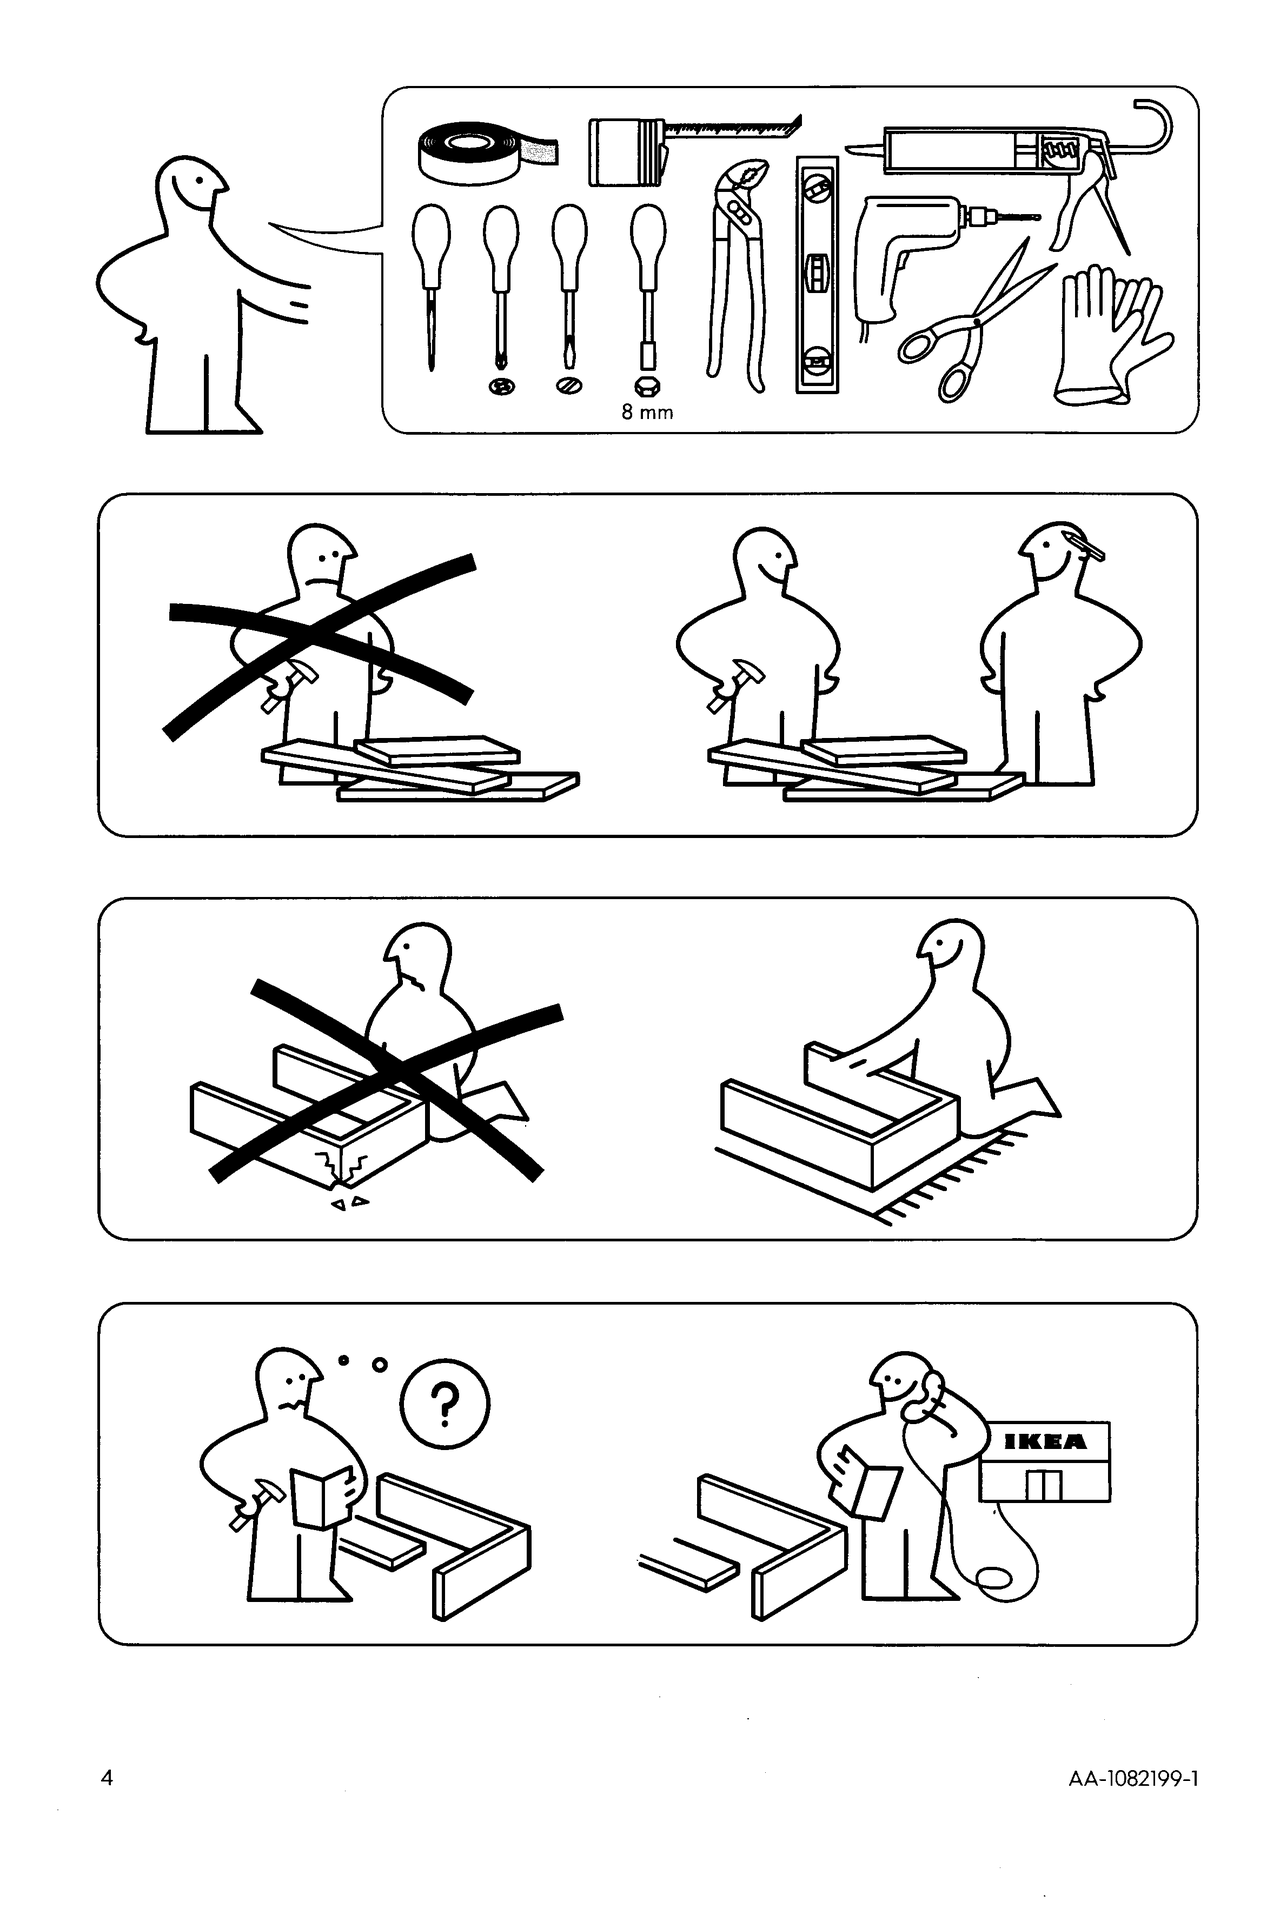 Afbeelding Inter IKEA Systems B.V.